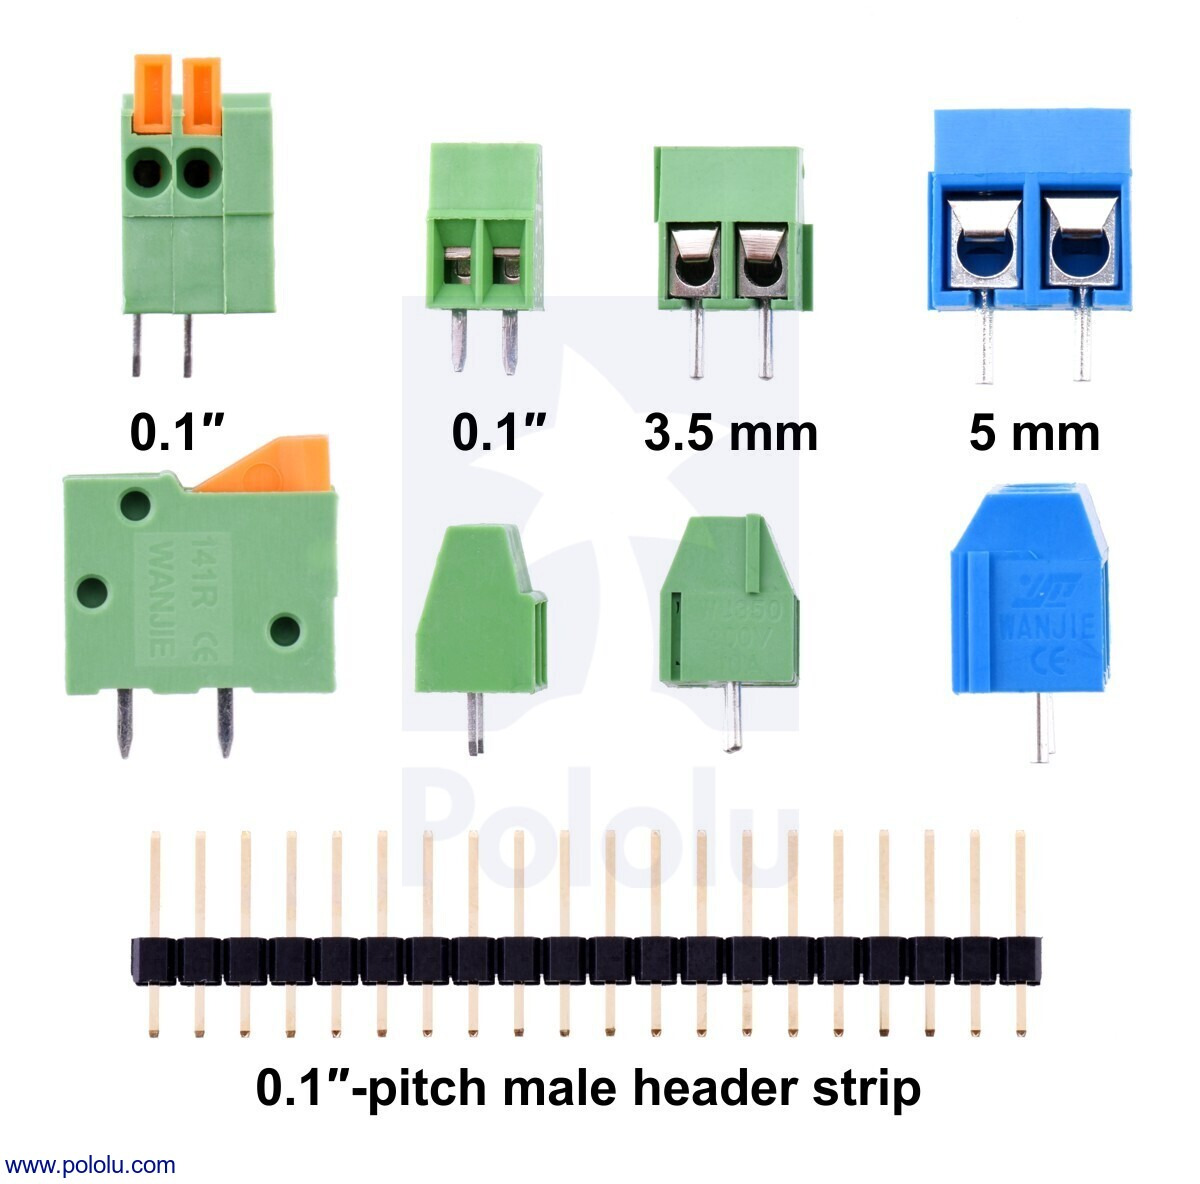 hight resolution of pololu screw terminal block 3 pin 3 5 mm pitch side entry 4 pack rh pololu com 3 5mm 3 wire jack wiring diagram 3 5mm 4 pin wiring